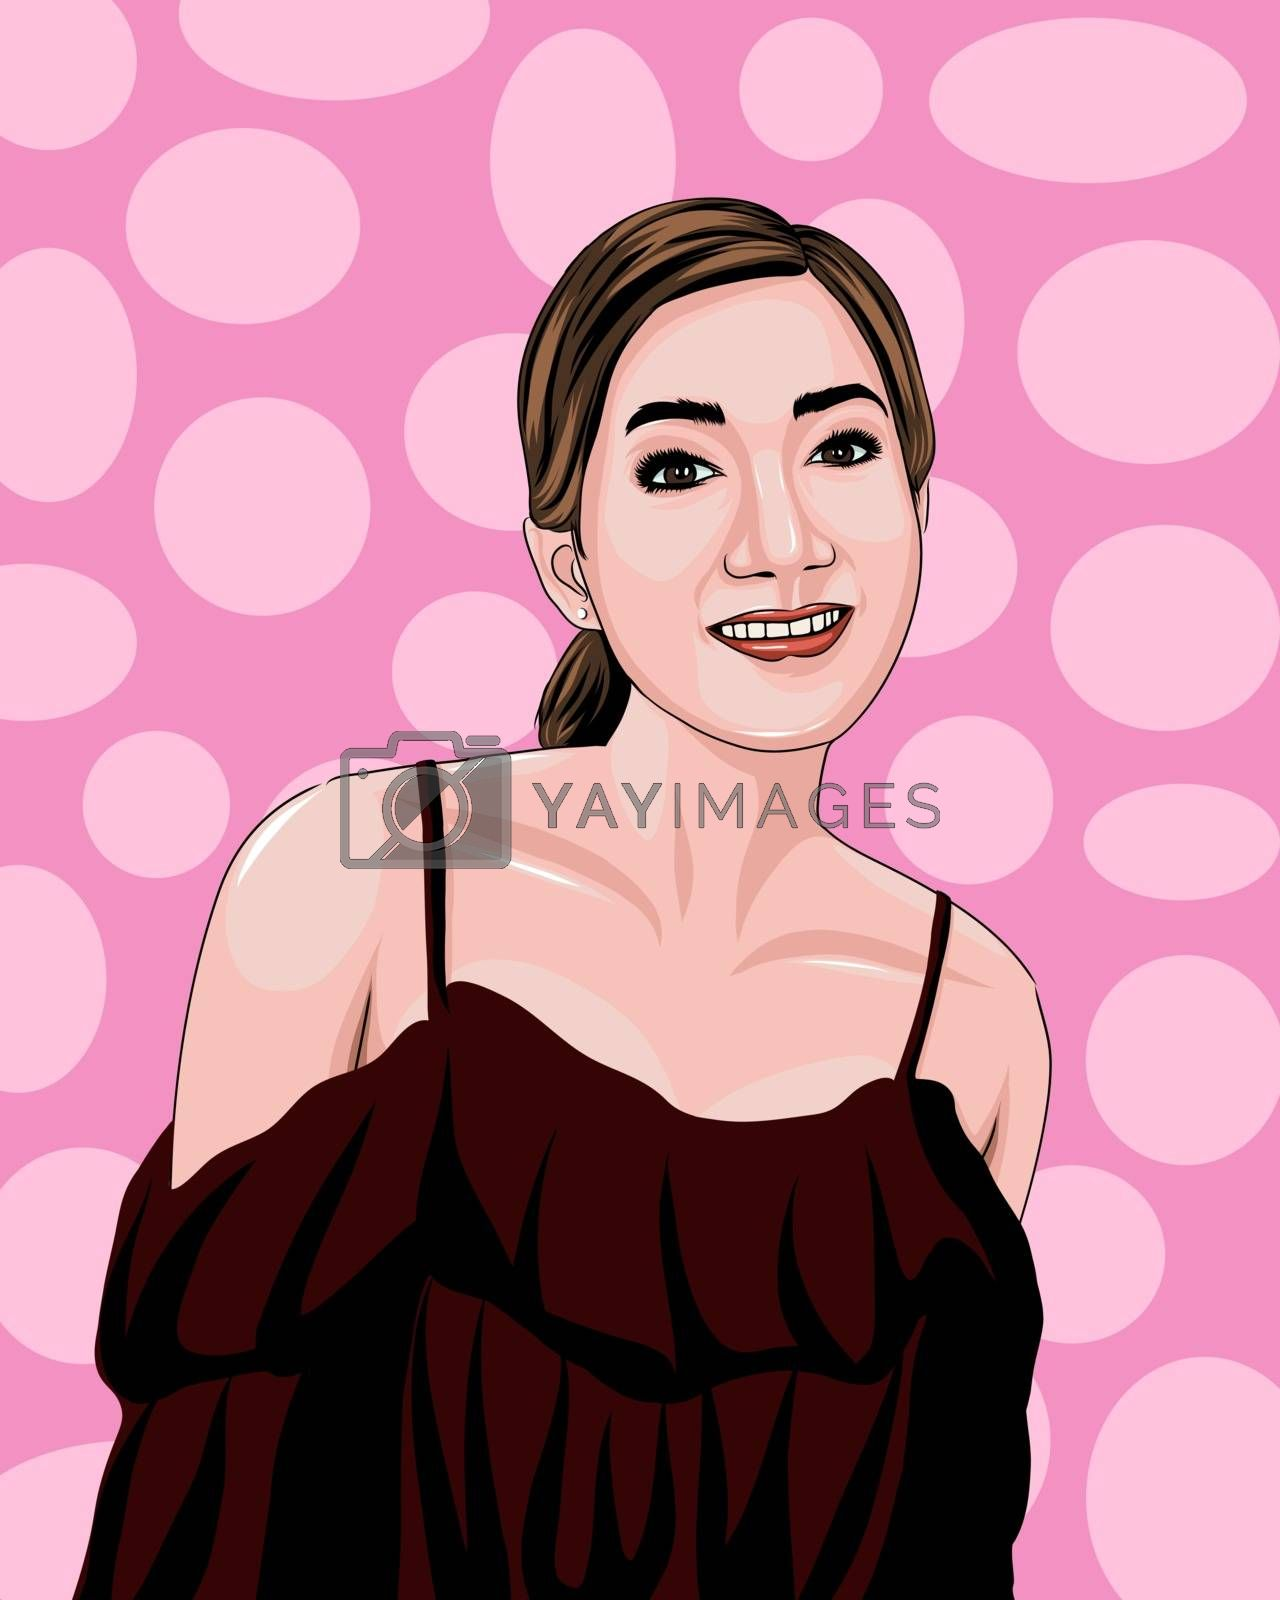 Vector illustration of a beautiful woman wearing a dark off-shoulder shirt On a pink circle pattern background.